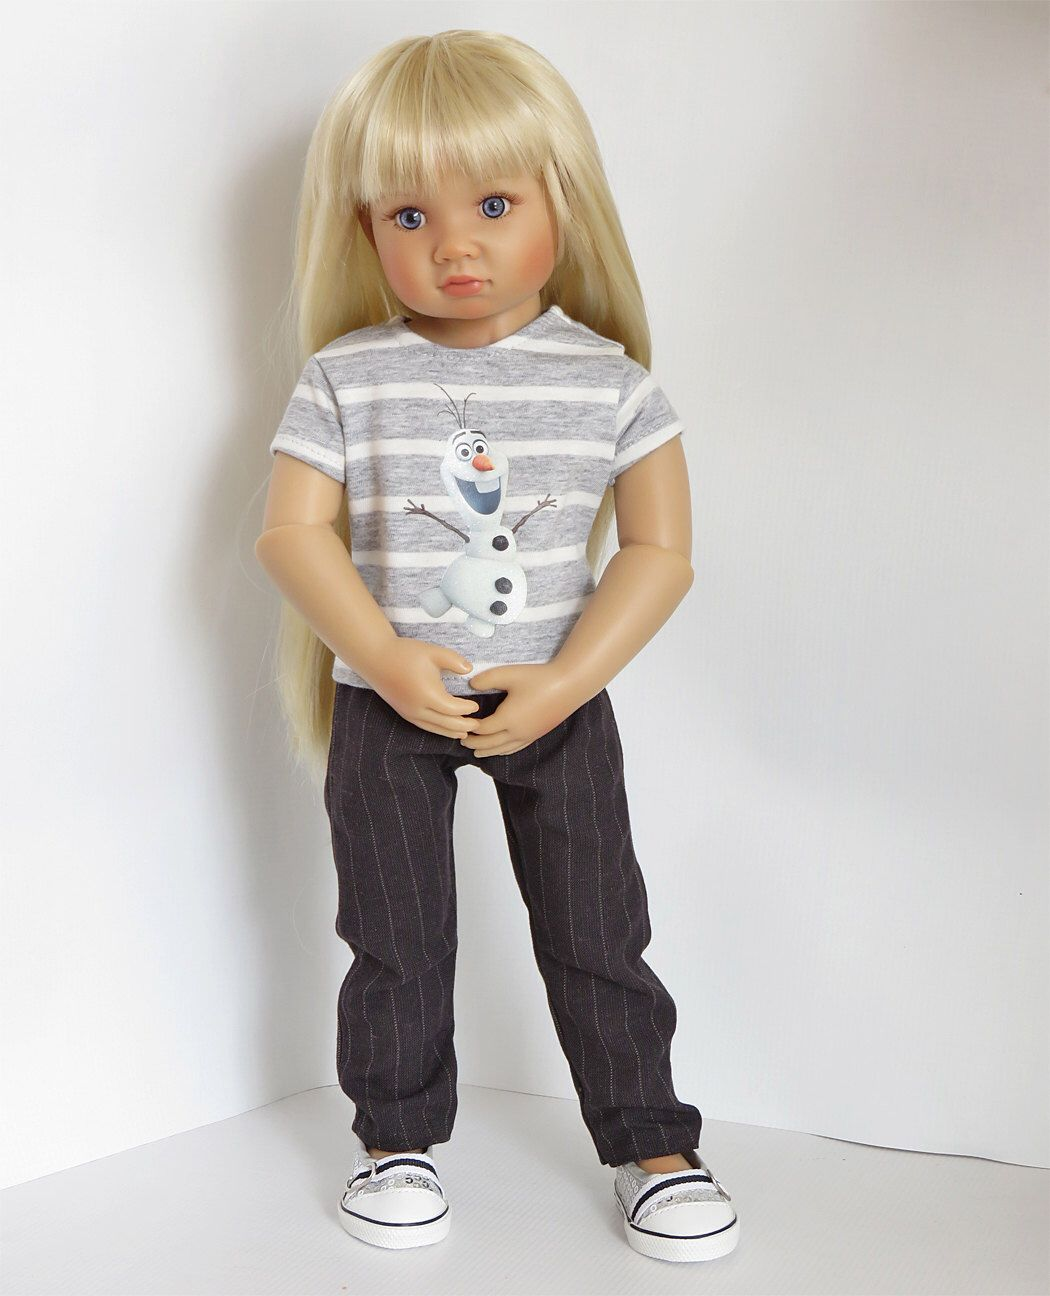 Grey Striped Frozen Olaf Top and Black Pinstripe Pants.   Fits Kidz 'n' Cats Dolls and Magic Attic Dolls by SillyMonkeyInc on Etsy https://www.etsy.com/listing/229680568/grey-striped-frozen-olaf-top-and-black